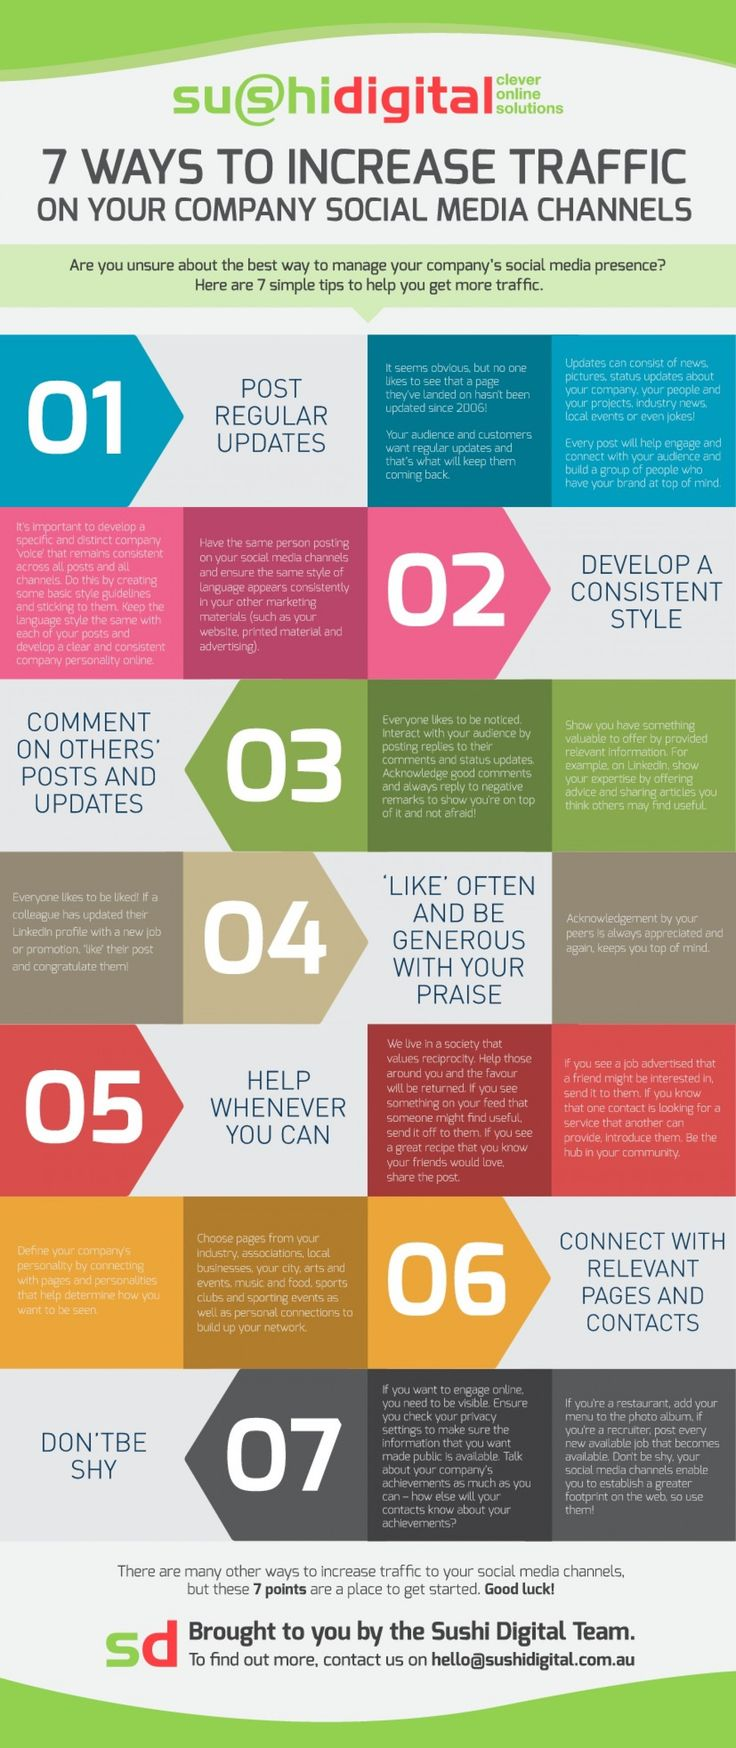 7 Ways to Increase #Traffic on Your Company #SocialMedia Channels - #infographic